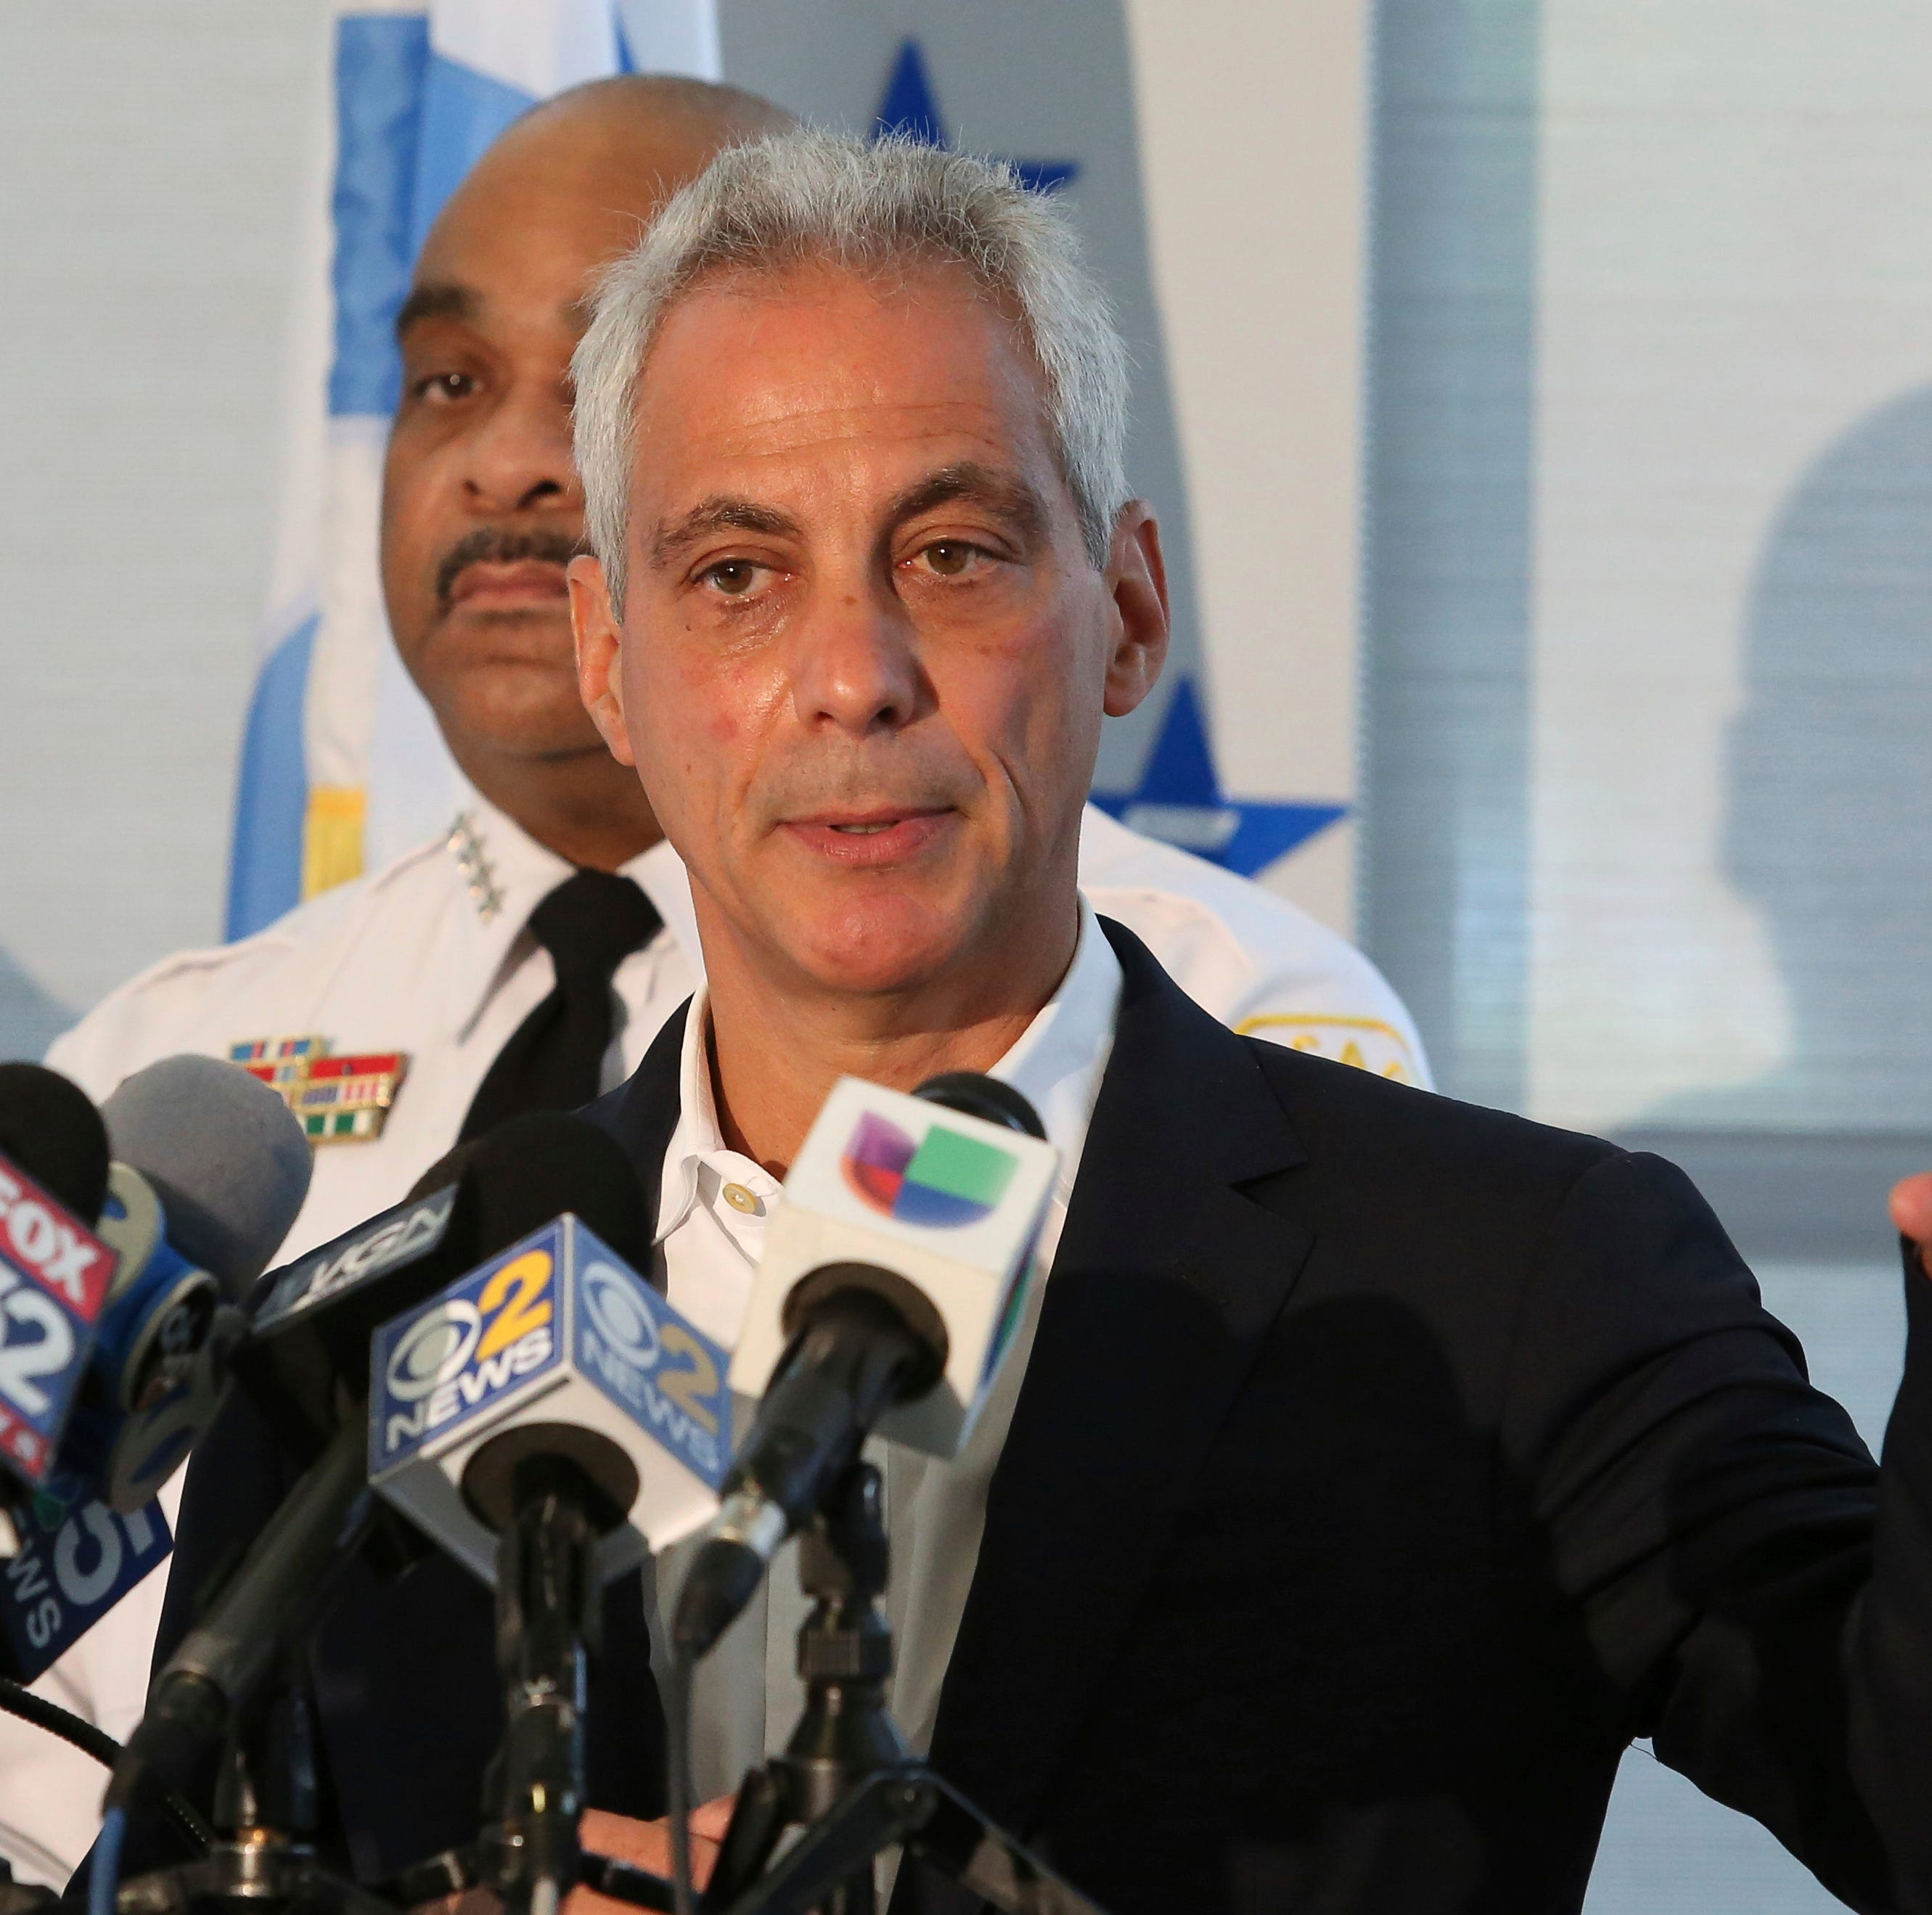 Chicago mayor wants to legalize marijuana, open casino to deal with city's pension crisis